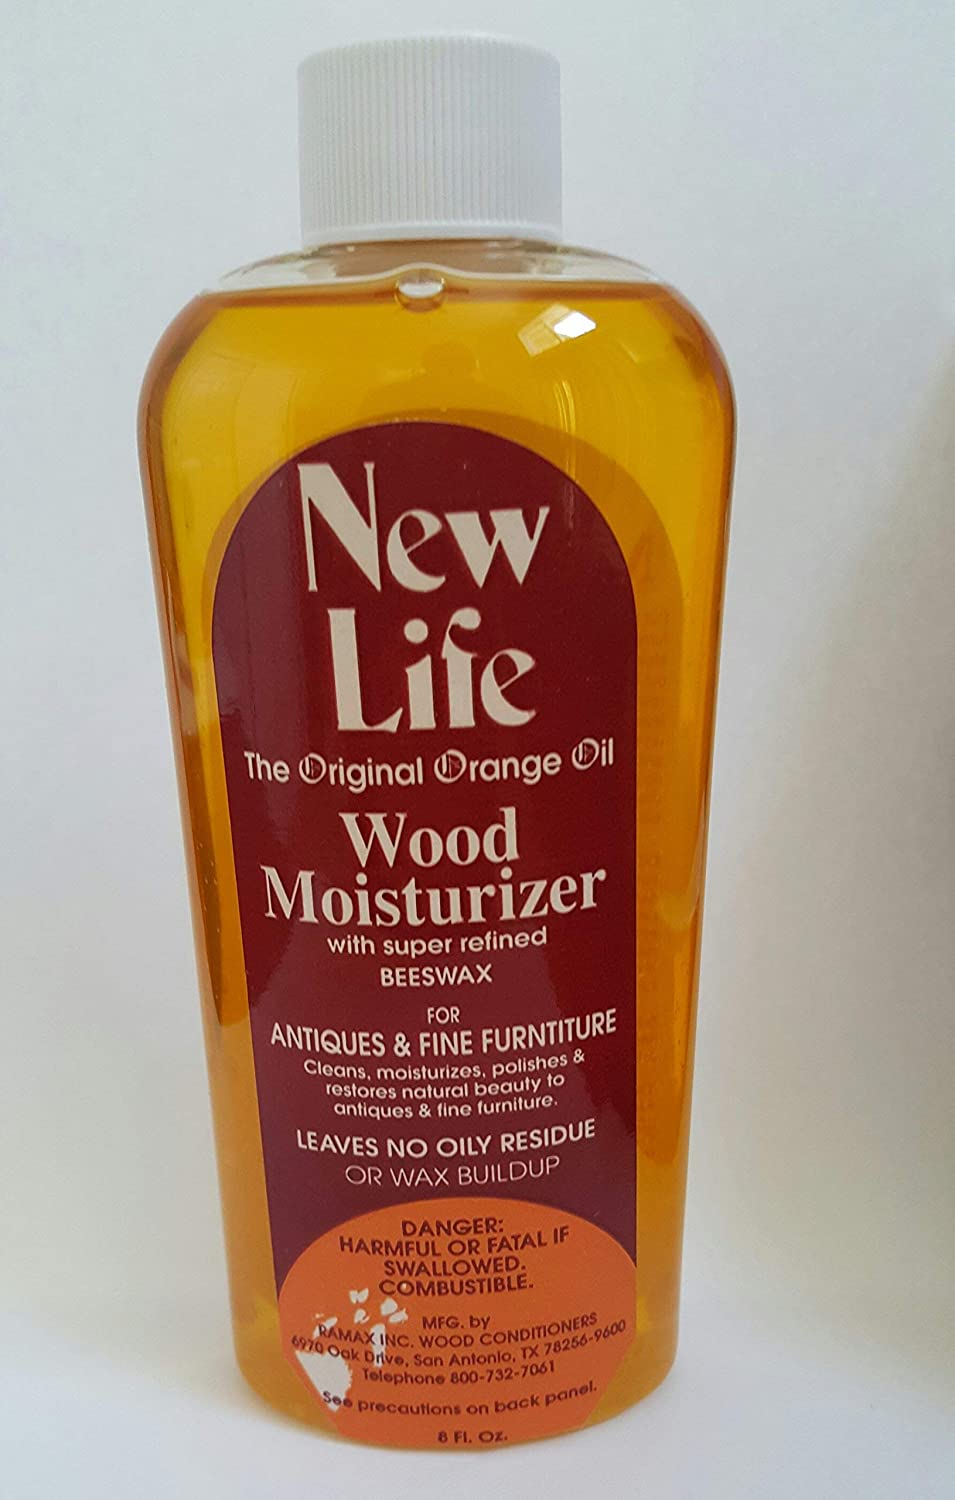 RAMAX New Life Wood Moisturizer Original Orange Oil 8 oz (8 oz)